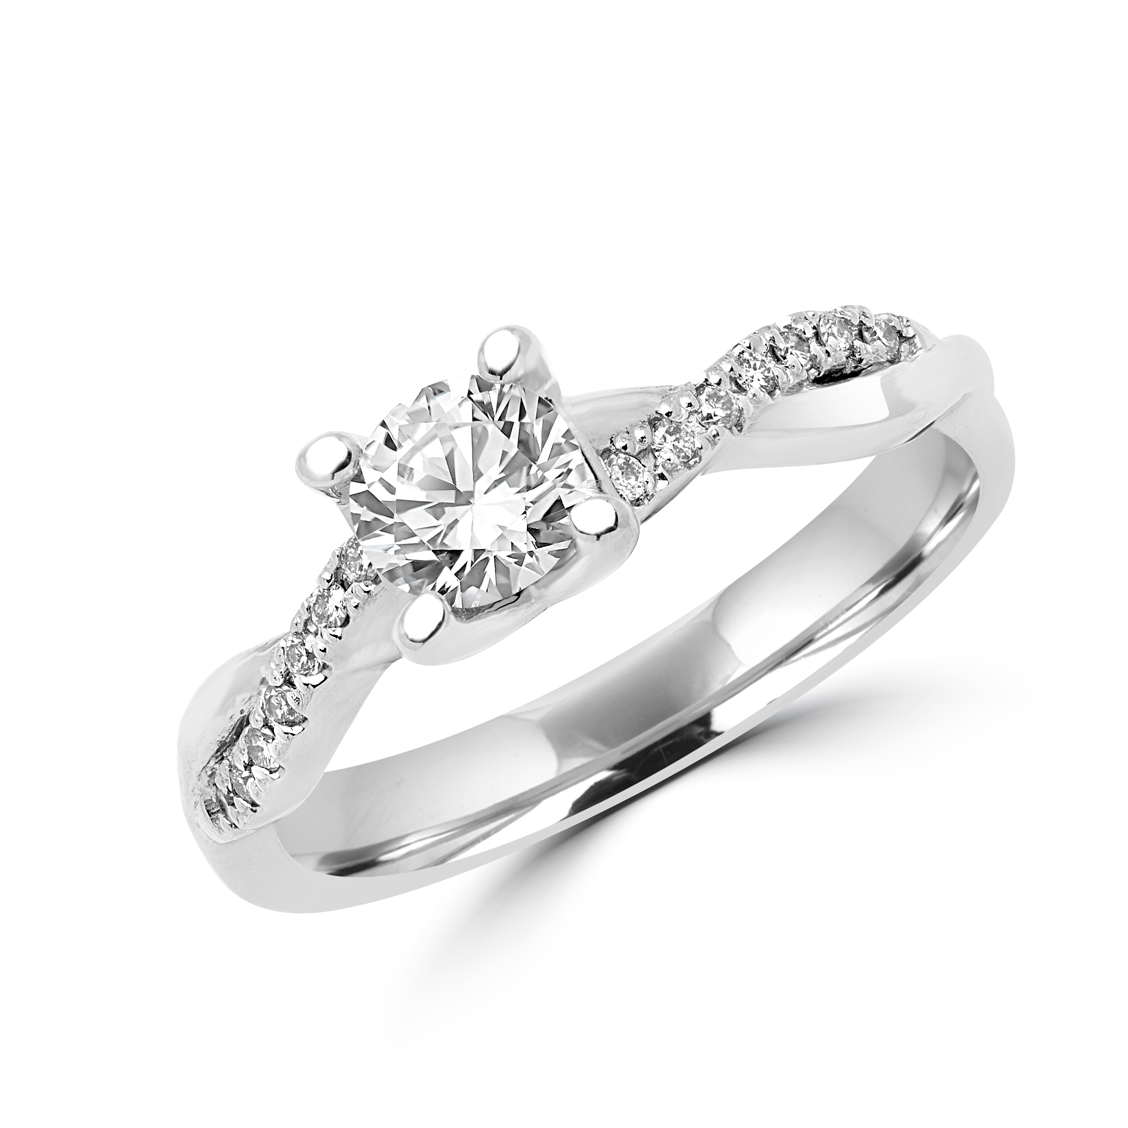 Twist of love engagement ring 1.14 (ctw) in 14k white gold